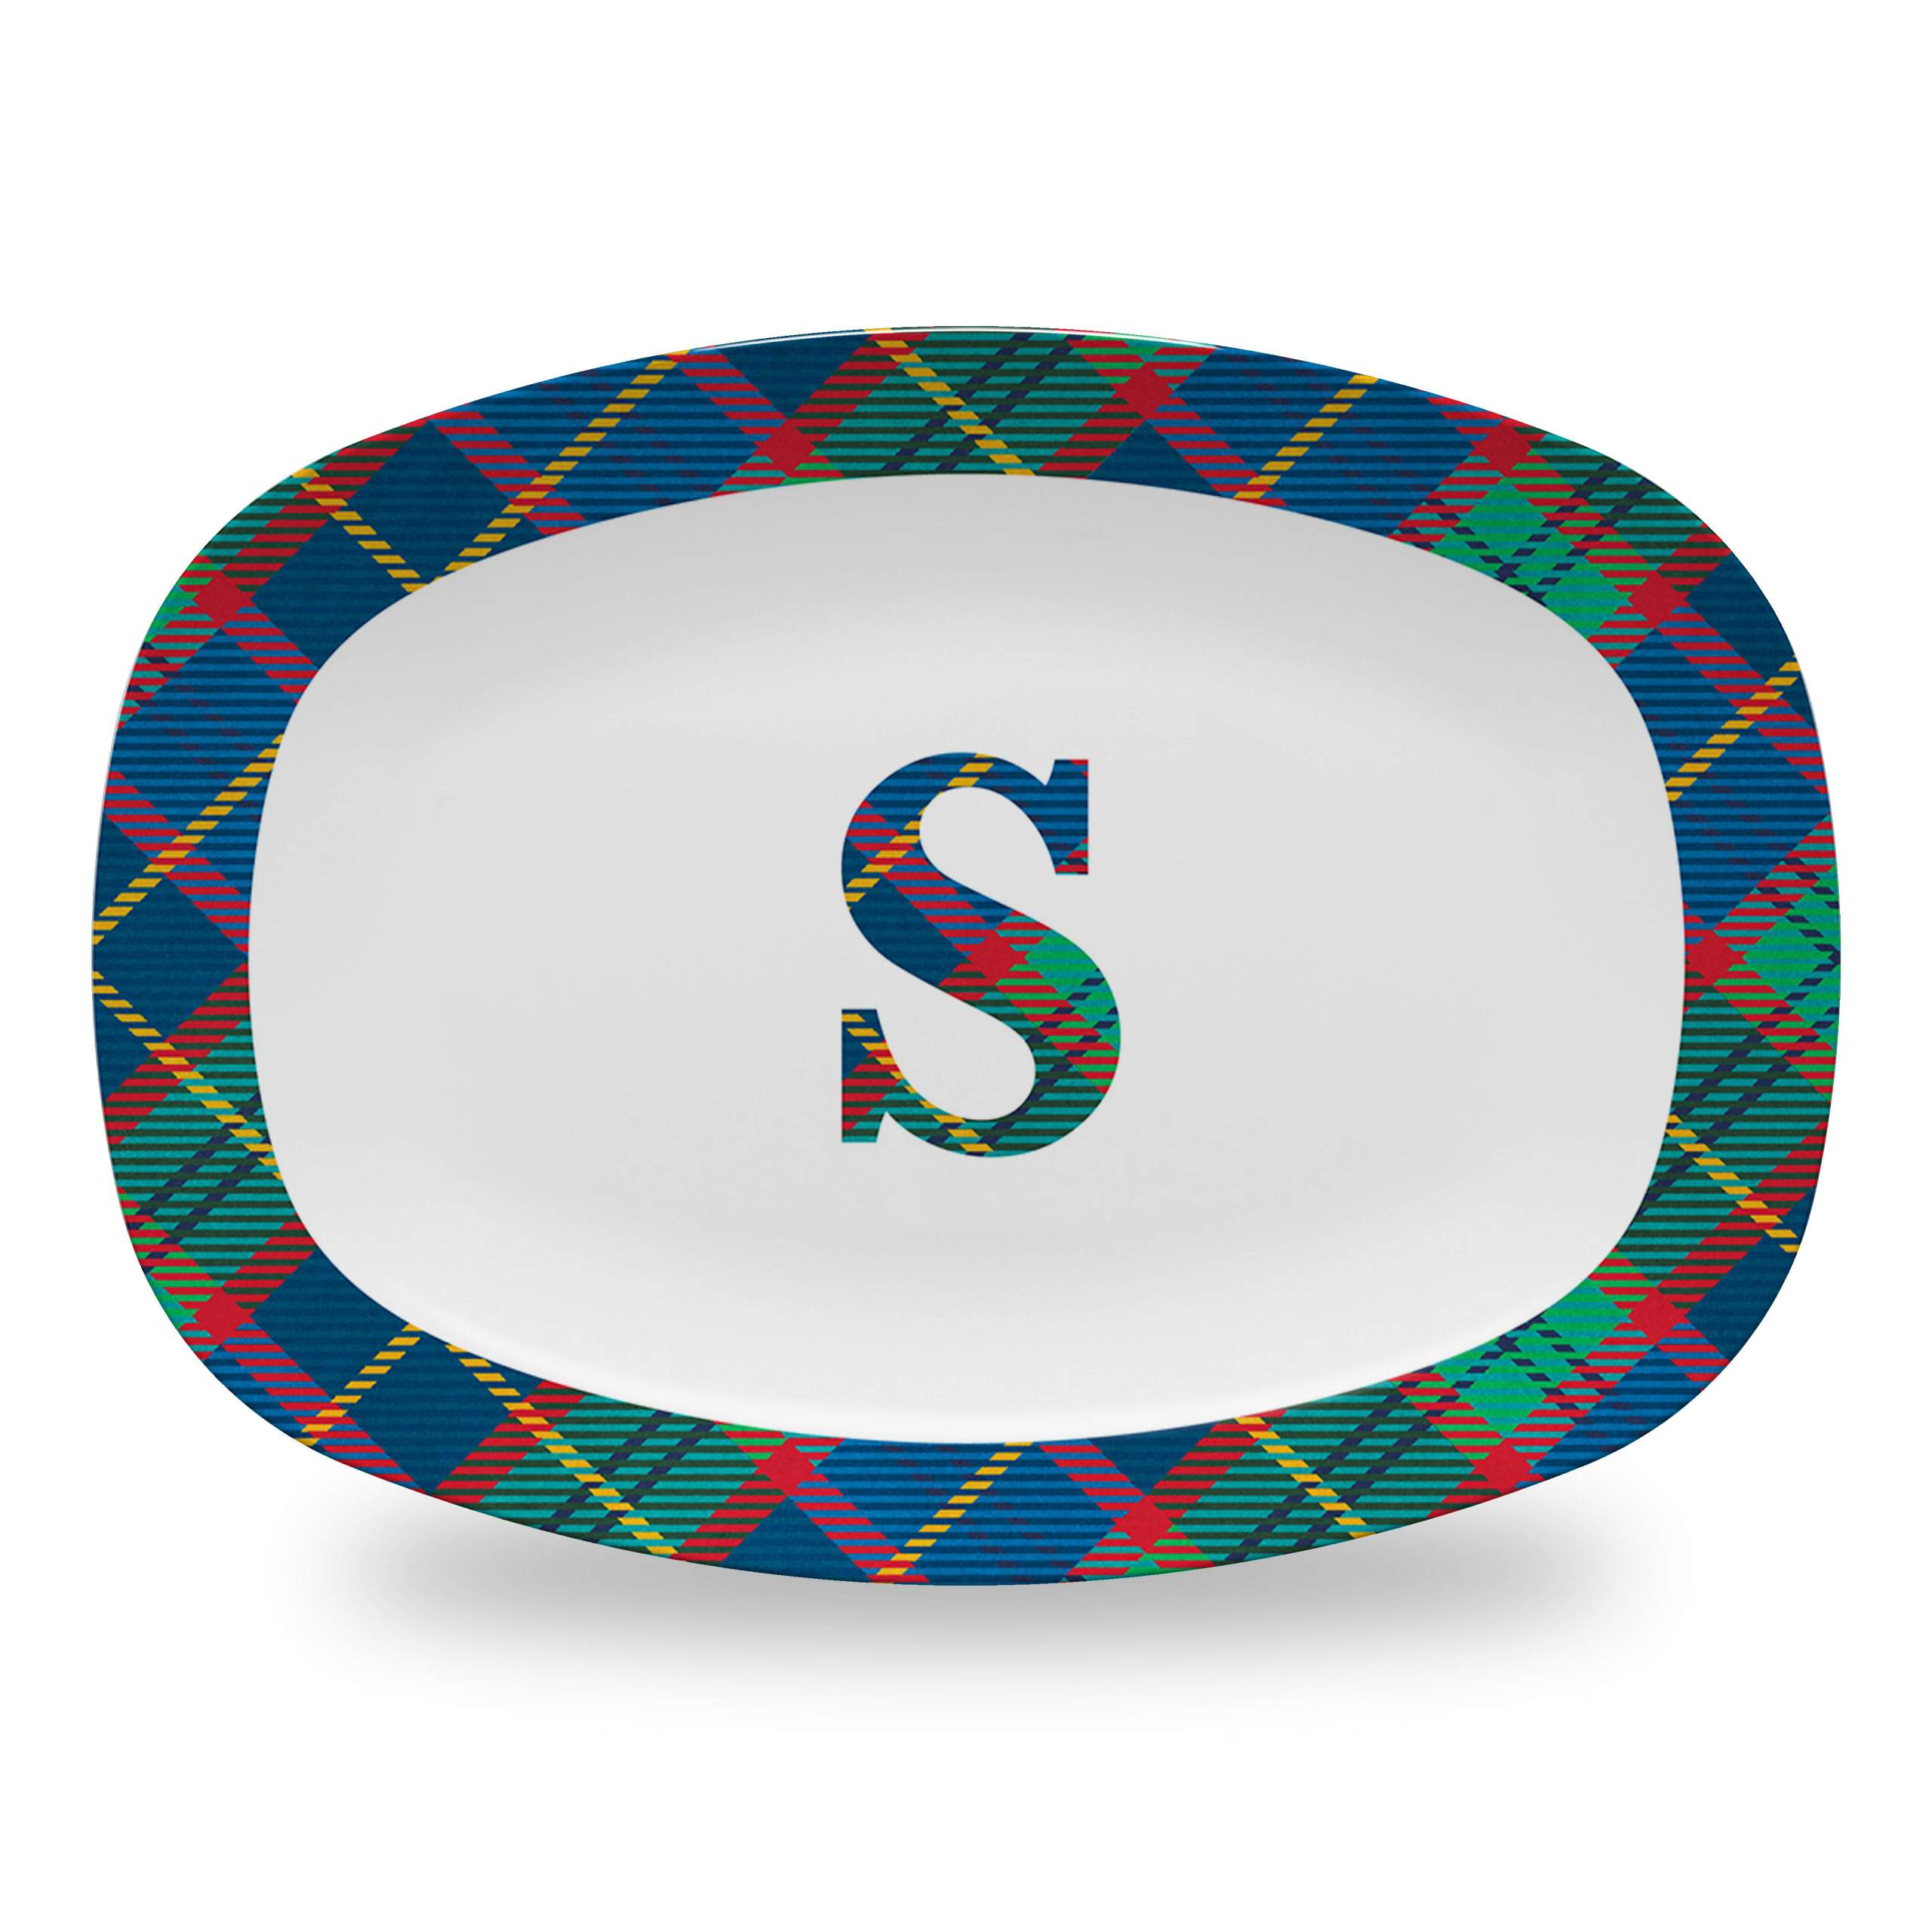 Tartan Platter with Large Plaid Initial